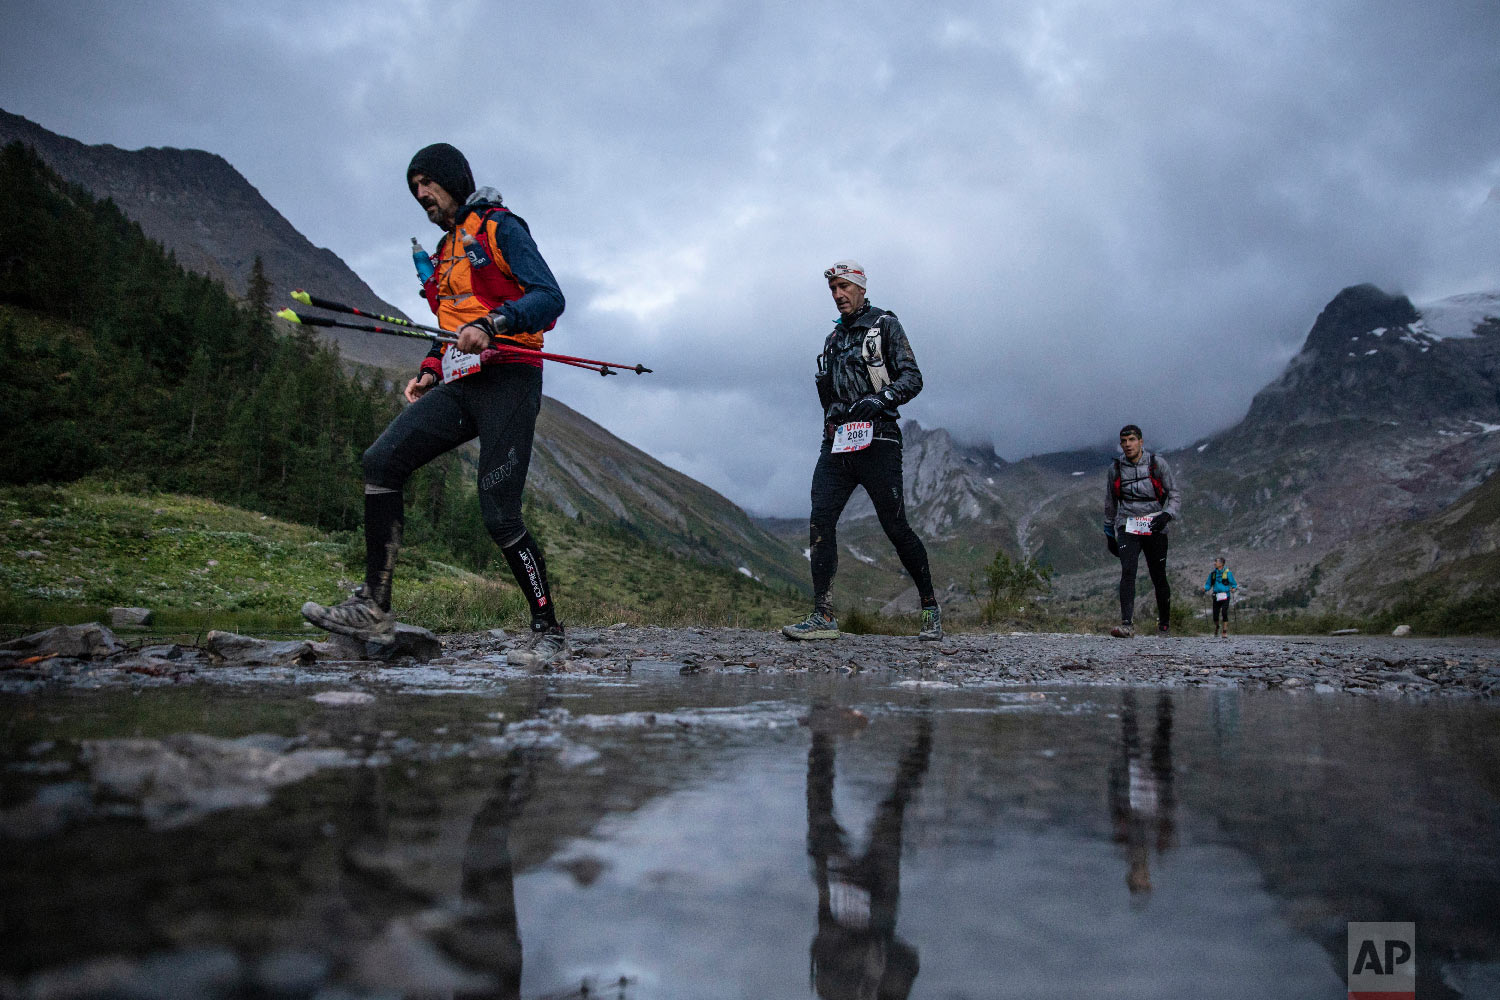 Competitors run next to the Combal lake as they compete in the 170km Ultra-Trail of Mont-Blanc (UTMB) race, in Courmayeur, Italy, Sept 1, 2018. (AP Photo/Laurent Cipriani)